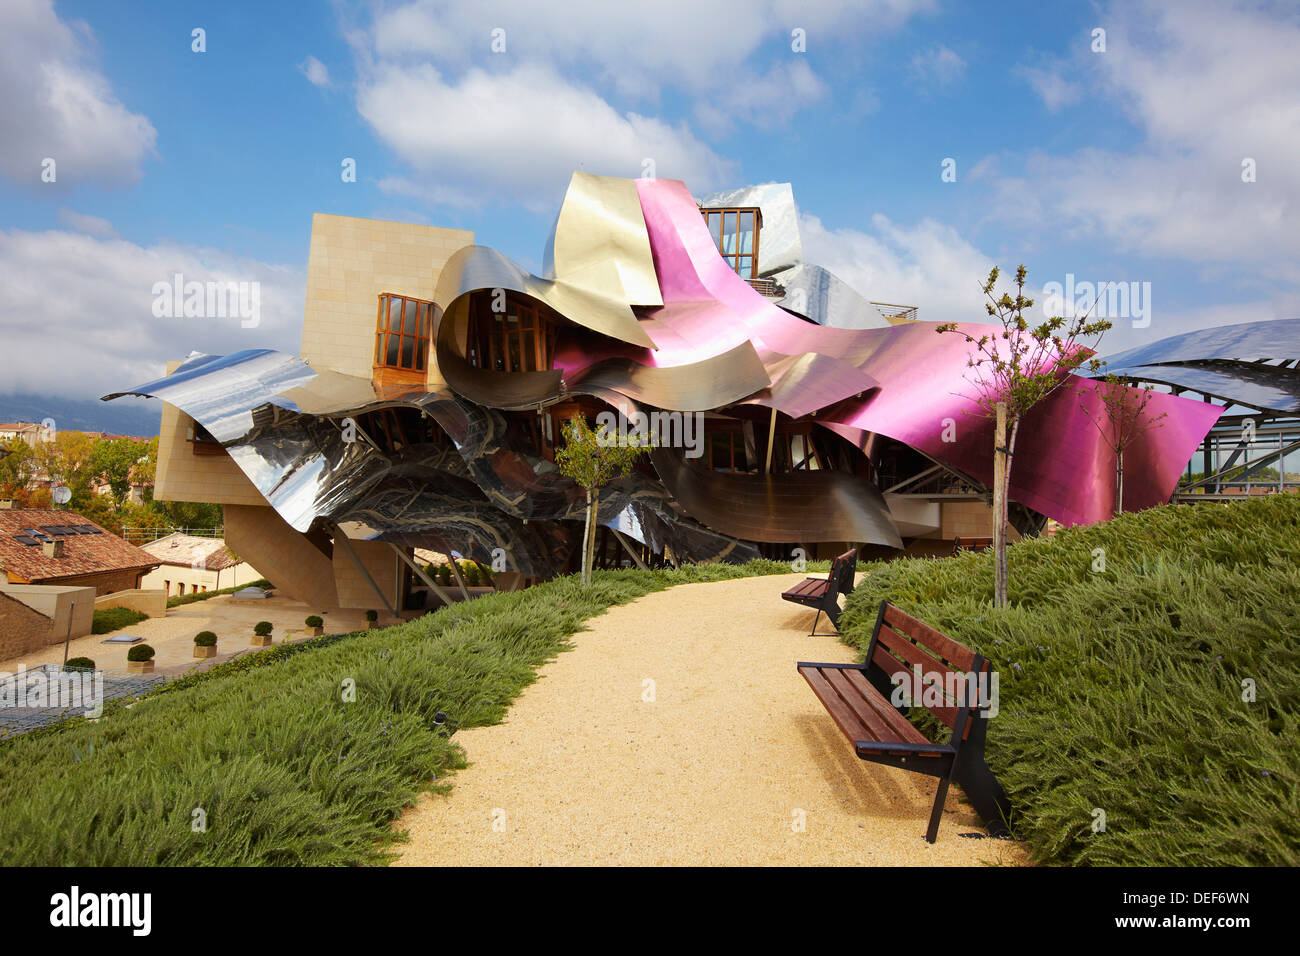 Hotel designed by frank gehry bodegas marques de riscal for Hotel el ciego marques de riscal